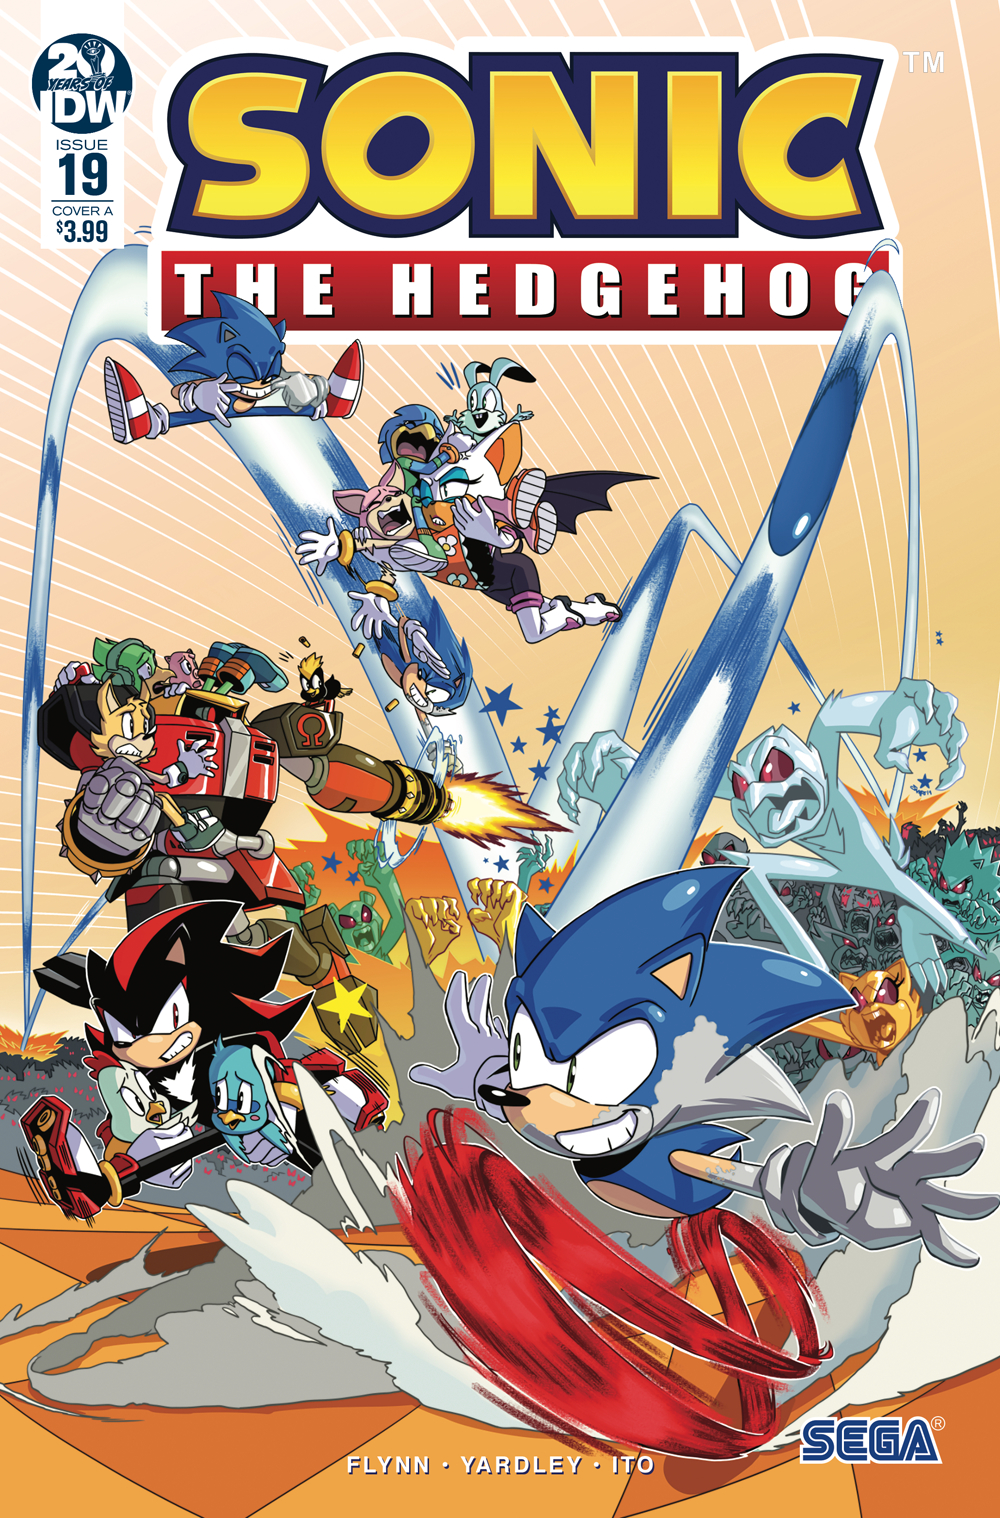 SONIC THE HEDGEHOG #19 CVR A JAMPOLE